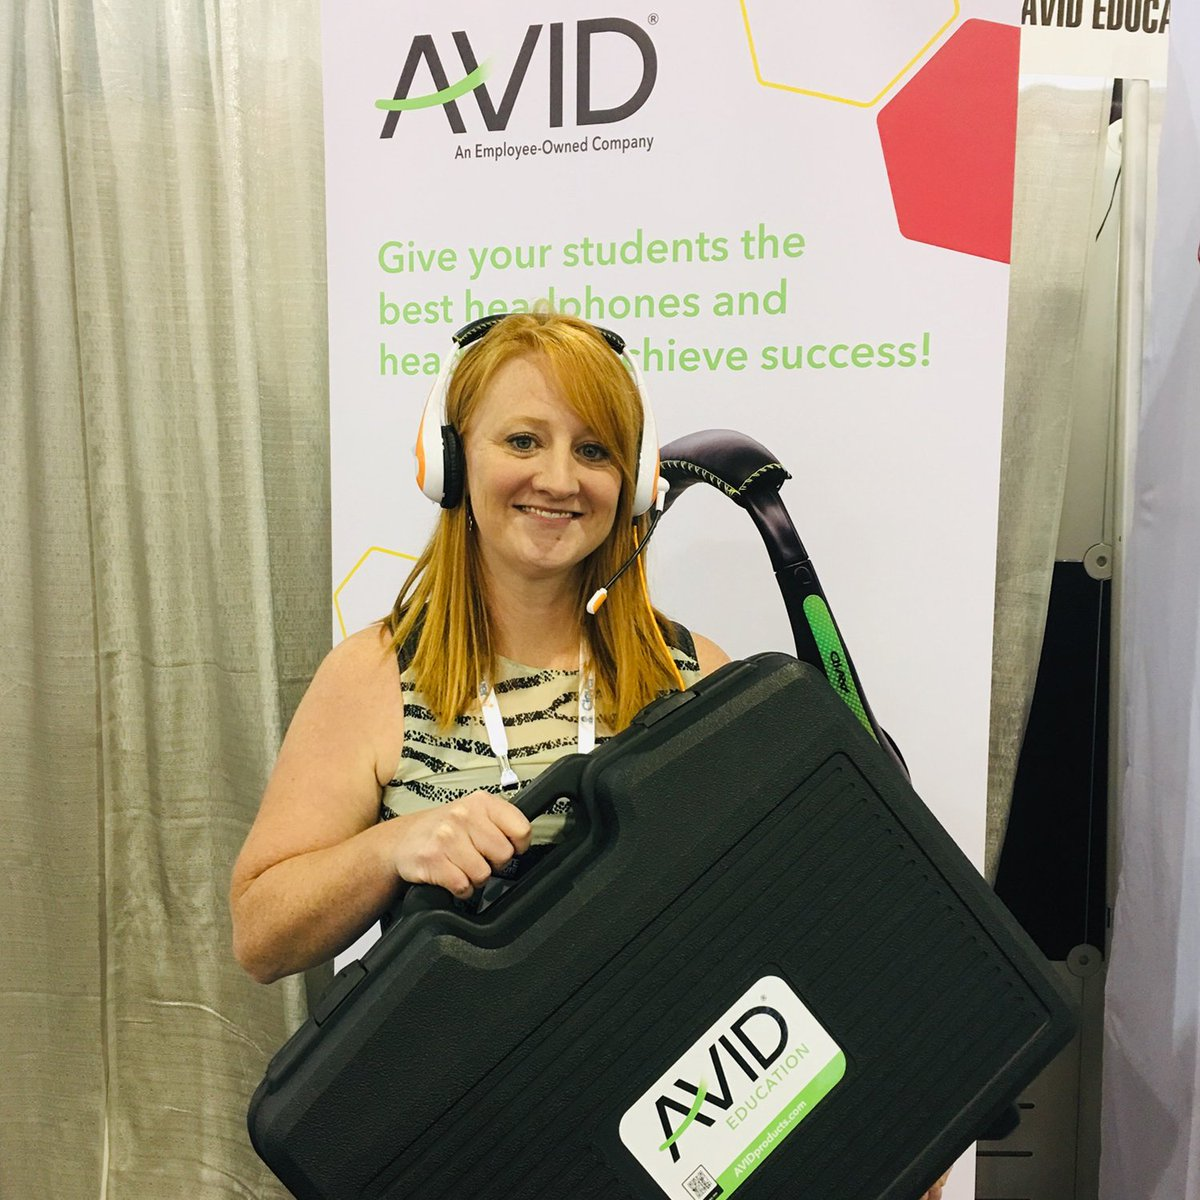 Congrats to our @iste Class Pack winners @cortneygehrke, @mrbarrett404 and @iheartmsjohnson! We hope you and your students enjoy your new #avidheadphones!  #edtech #iste19 #iste2019 #avideducation